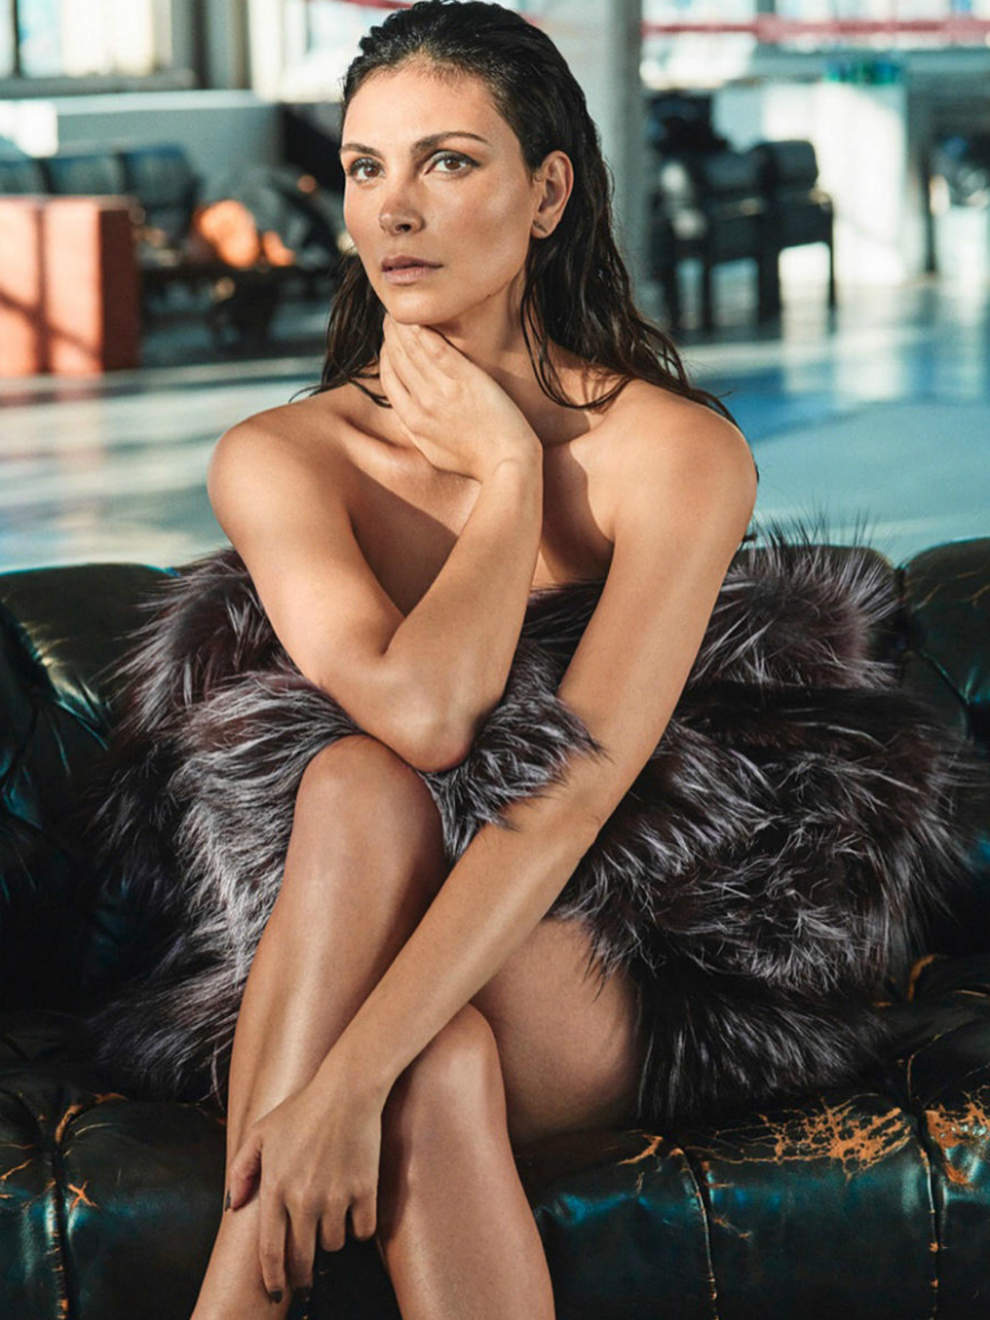 Pussy Morena Baccarin naked (21 photos), Ass, Cleavage, Instagram, butt 2020